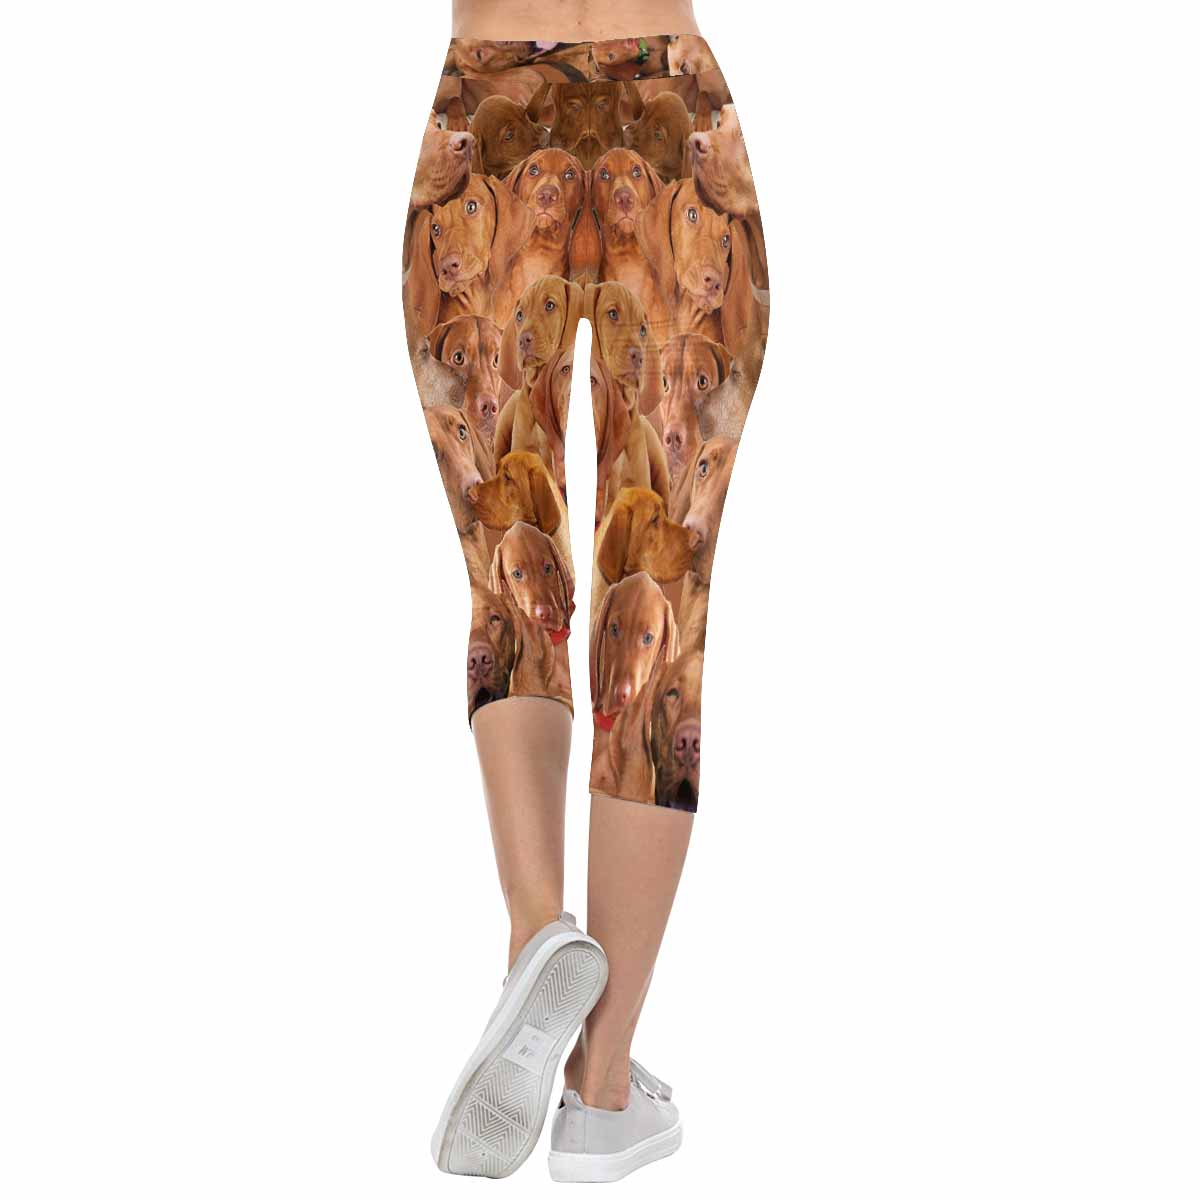 Vizslas on Vizslas on Vizslas 3/4 Capri Leggings